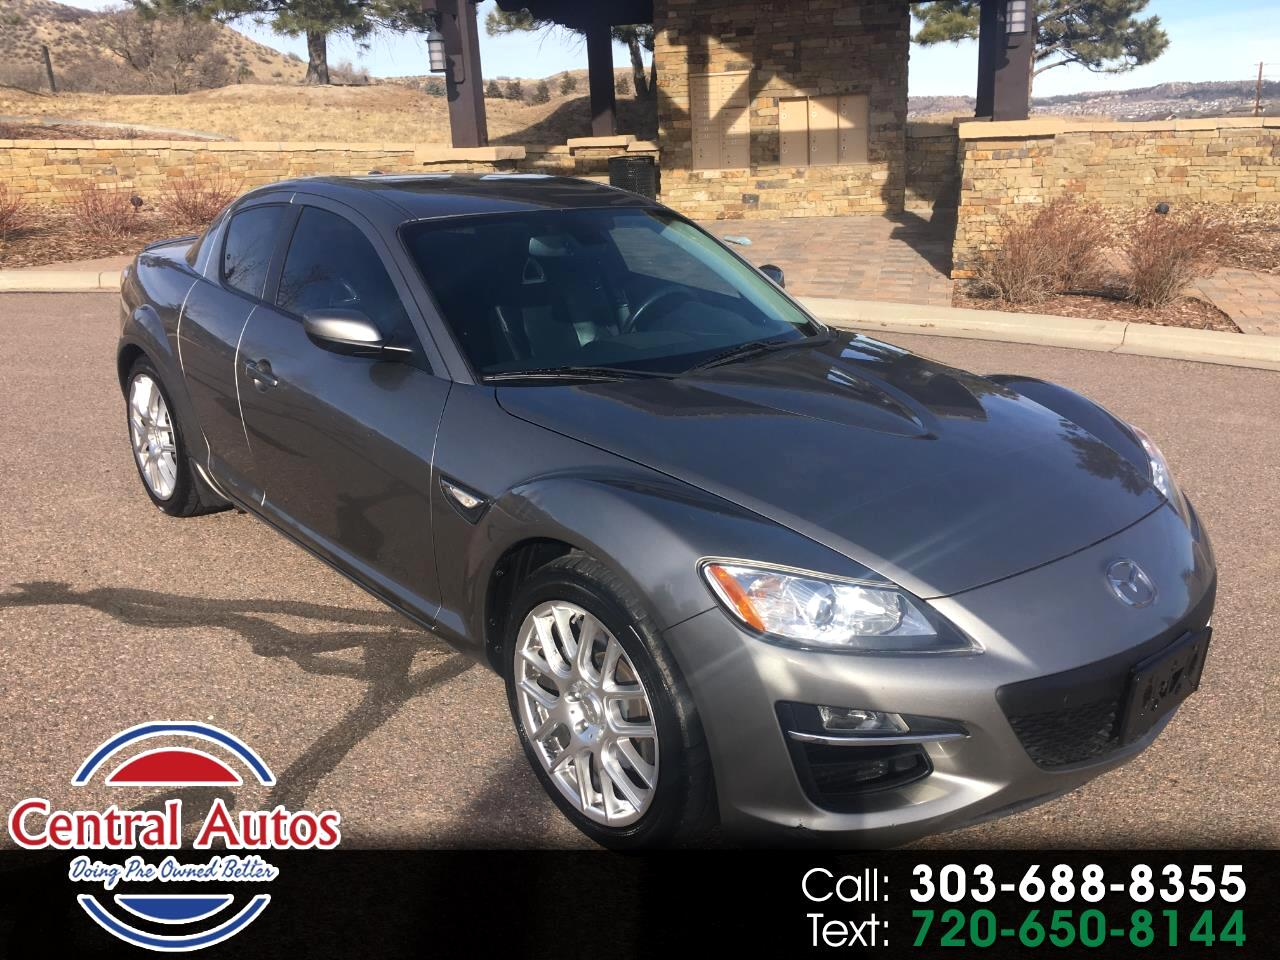 2009 Mazda RX-8 4dr Cpe Man Grand Touring